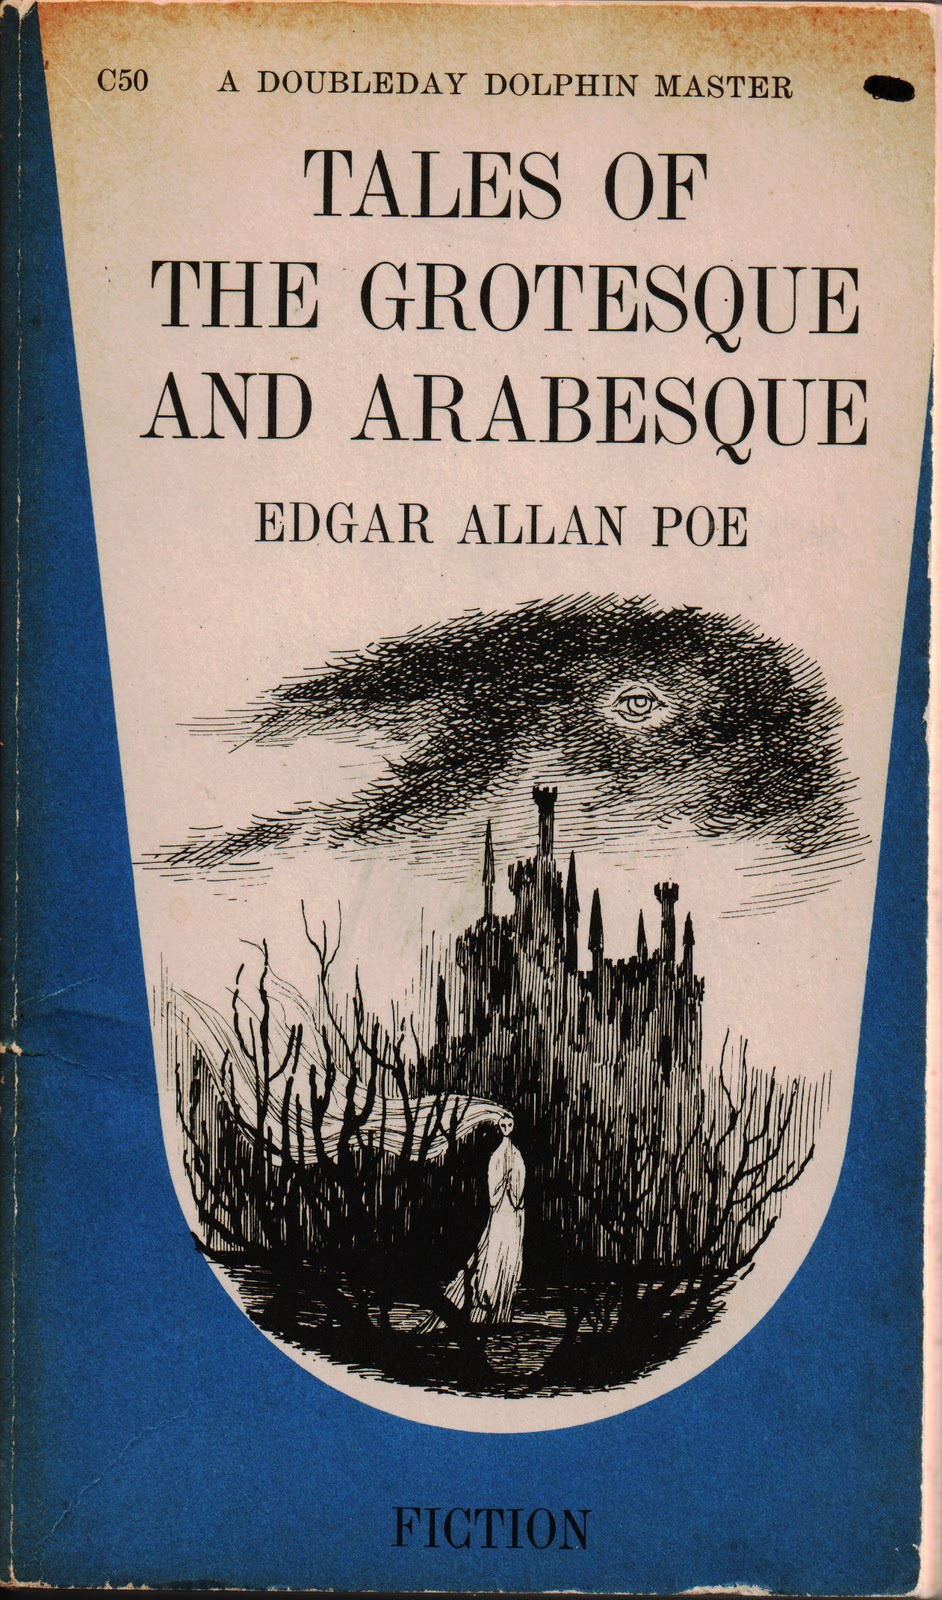 Edgar Allan Poe Quotes About Evil